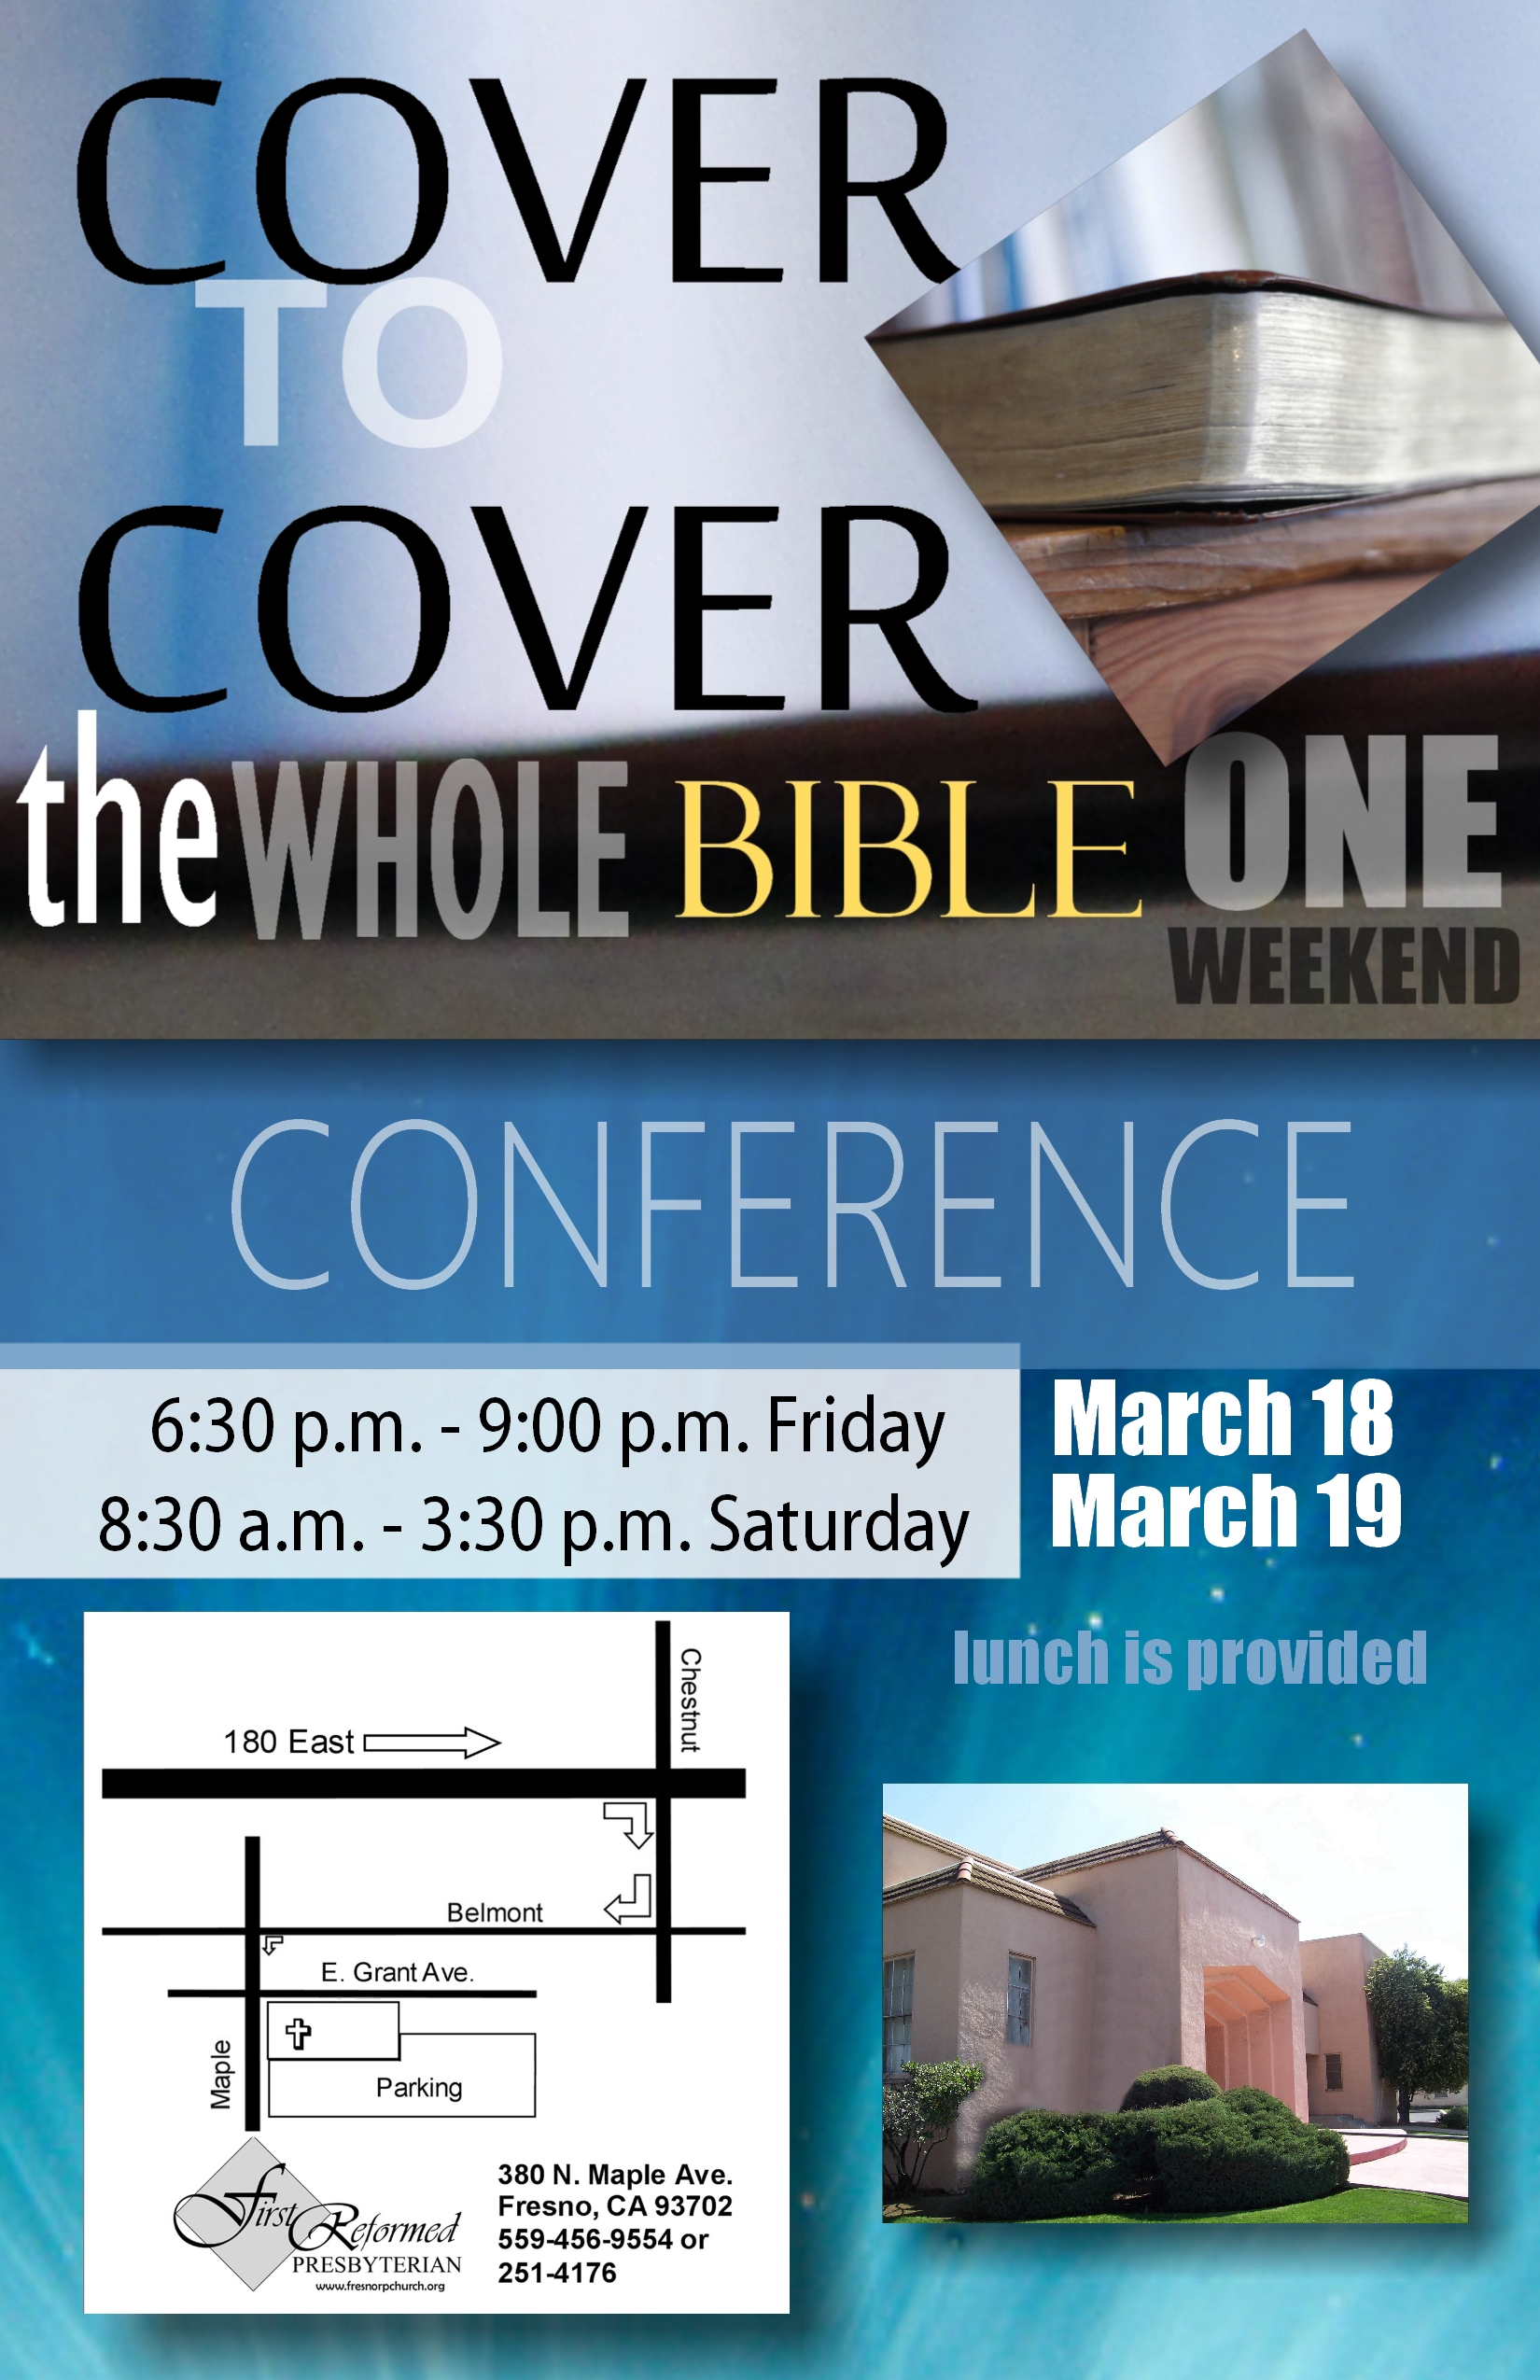 Cover To Cover Conference